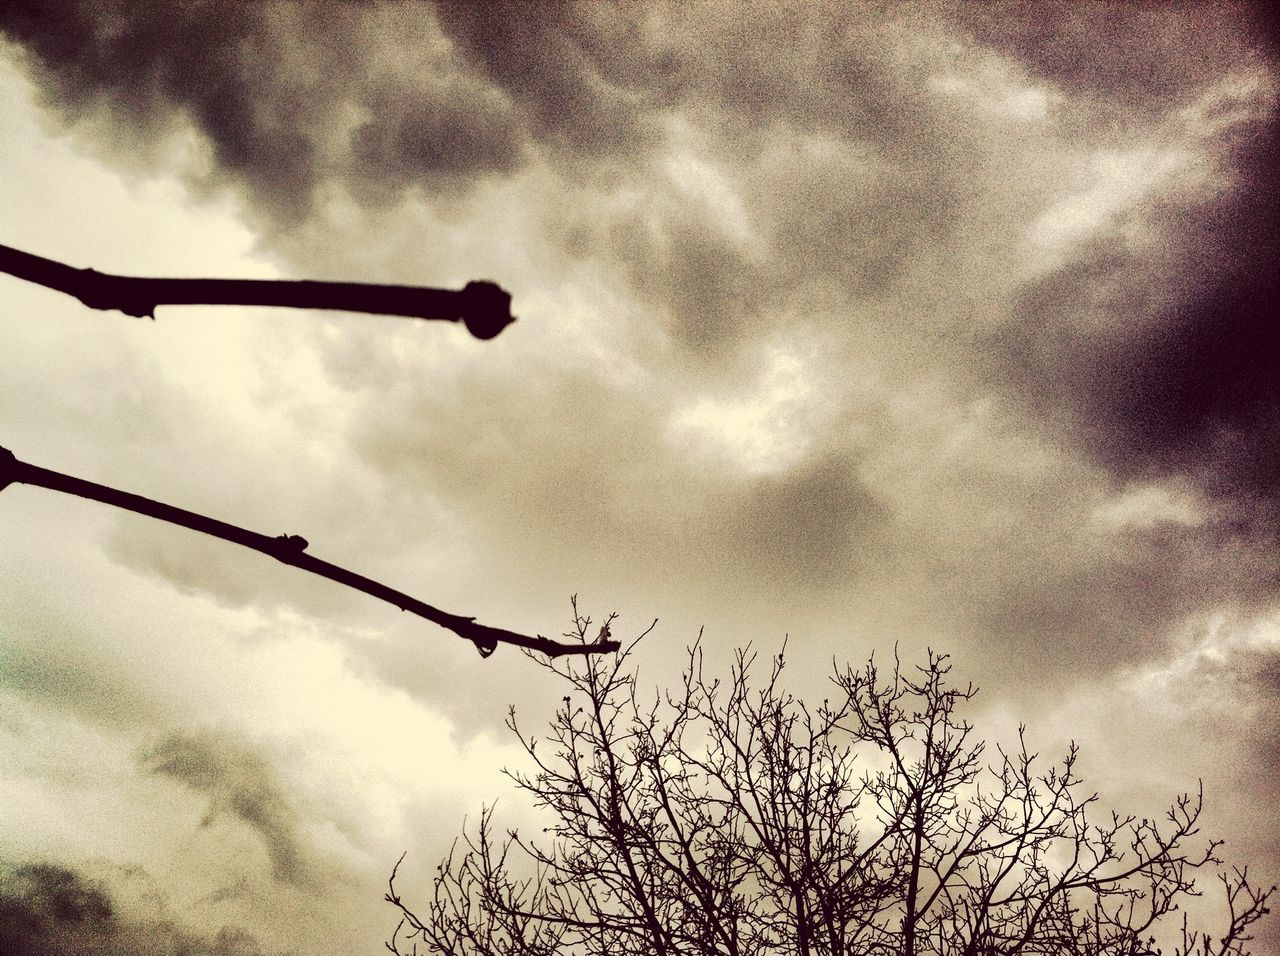 low angle view, sky, cloud - sky, silhouette, no people, day, outdoors, tree, bare tree, nature